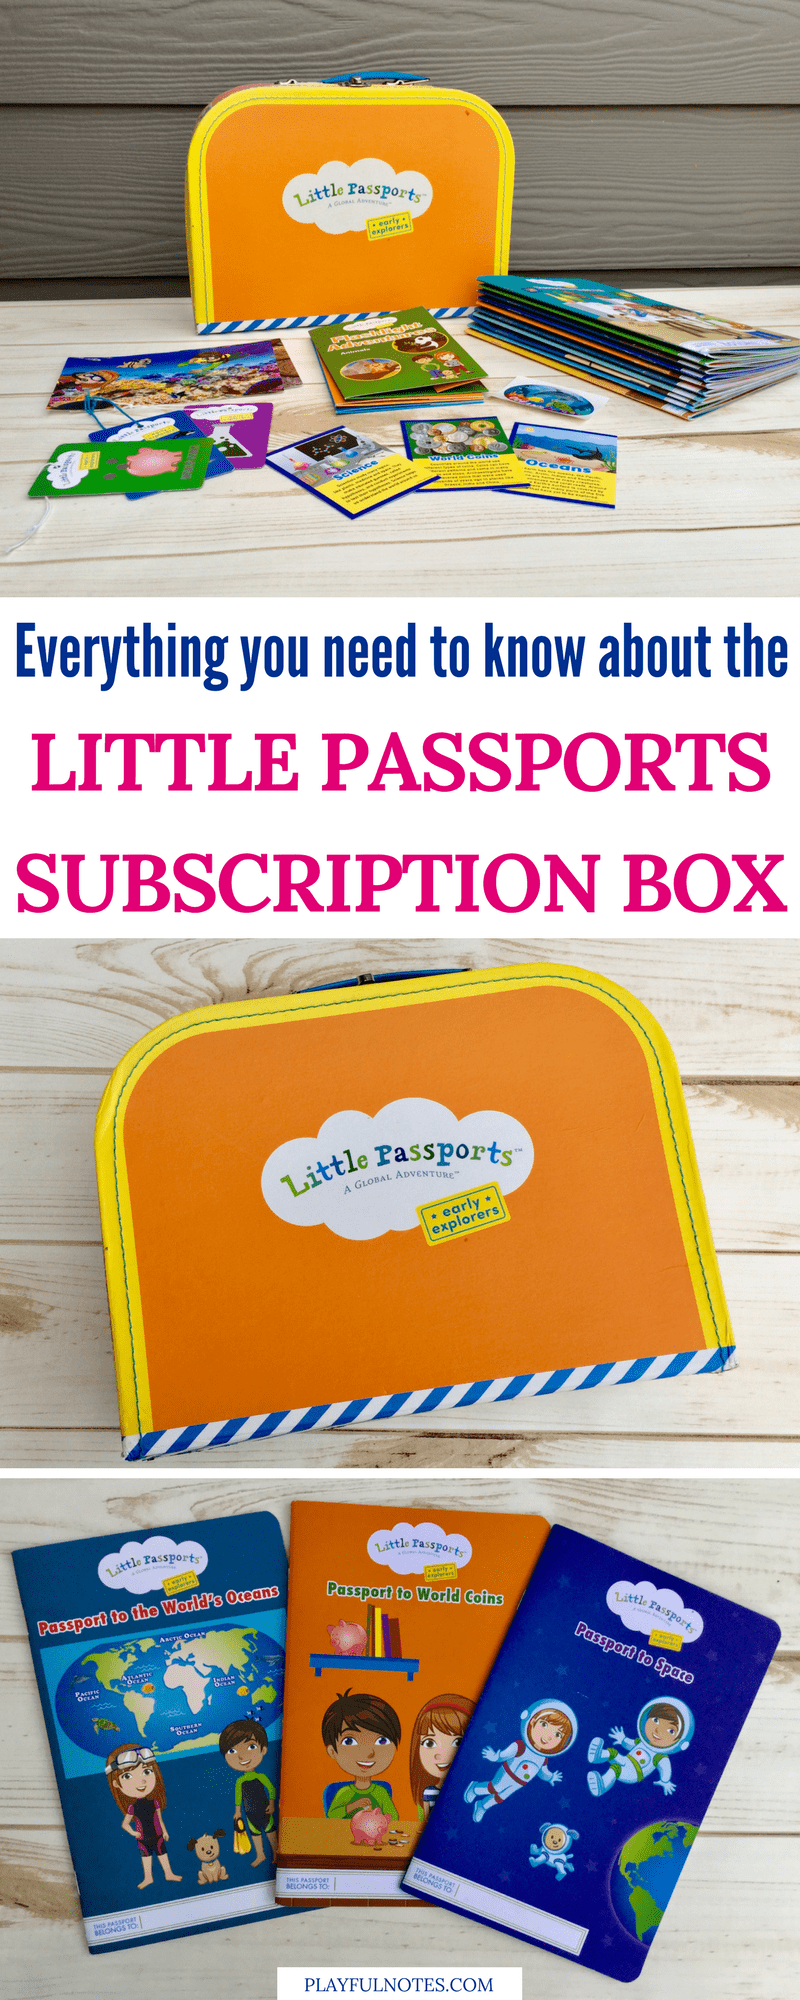 Little Passports subscription box: The best way to teach kids about the world in a fun and playful way! | Early Explorers | Subscription box for kids #LittlePassports